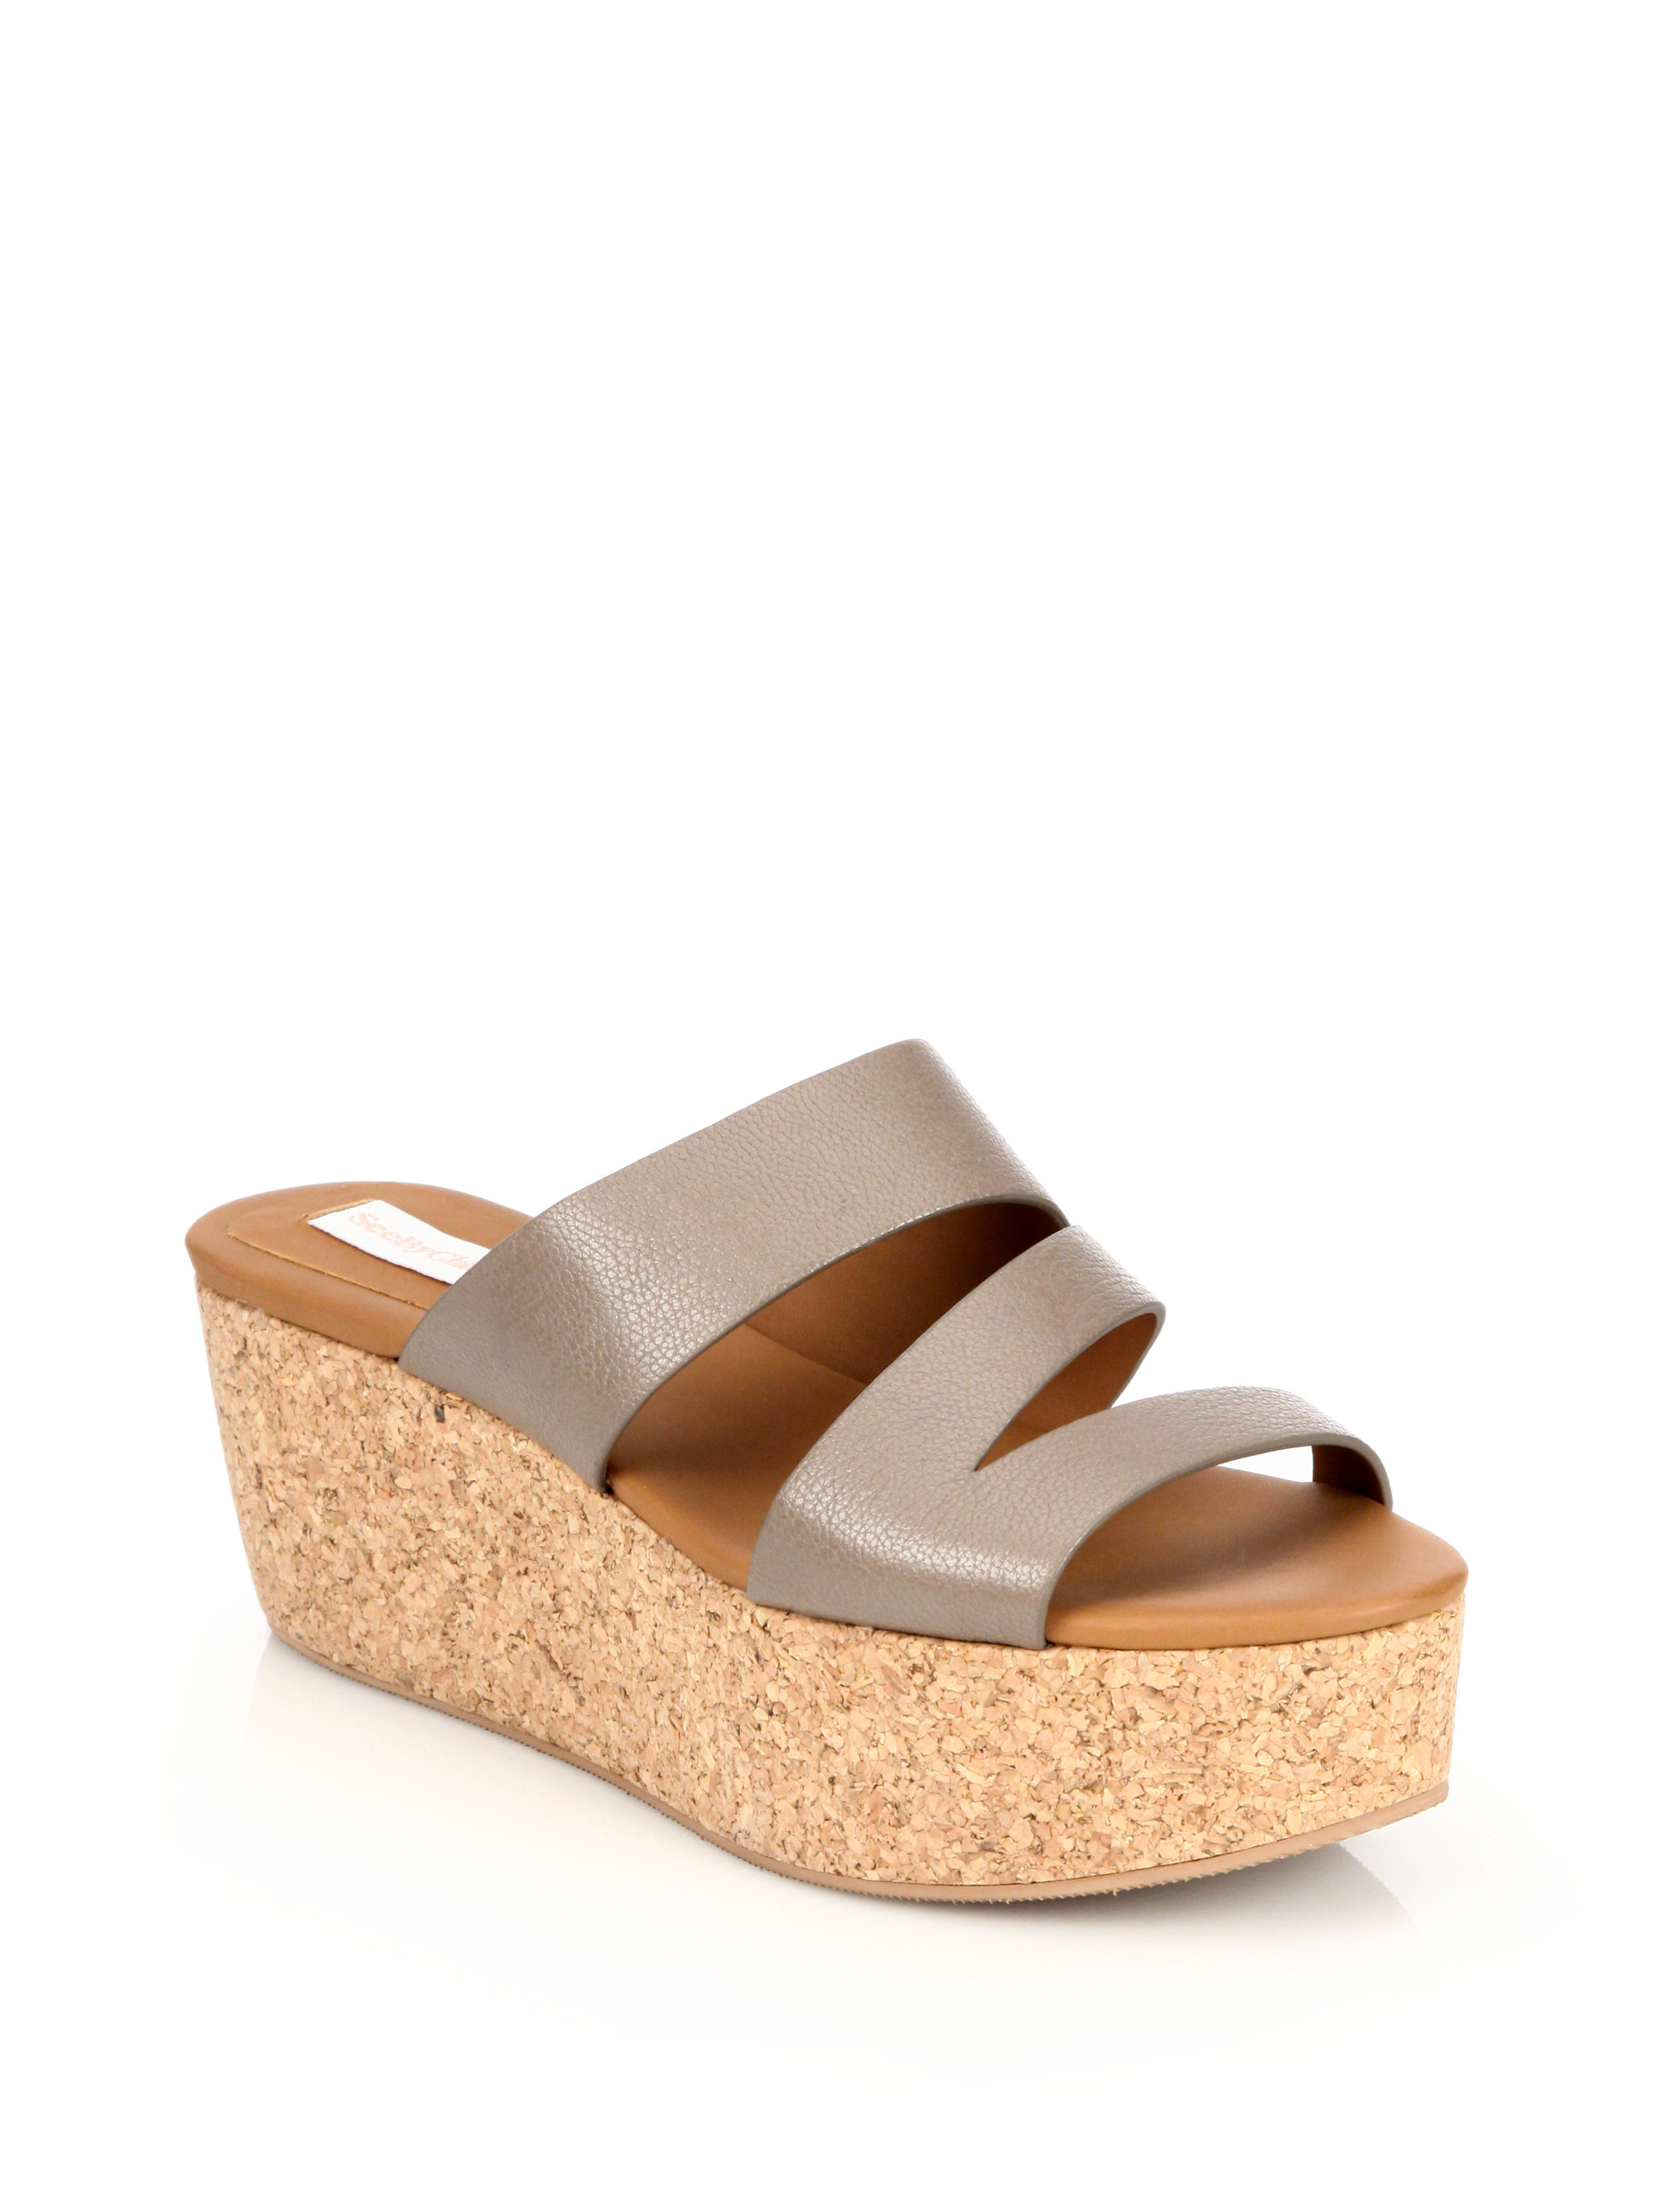 sale real See by Chloé Leather Platform Wedges free shipping 2014 unisex cheap affordable buy cheap sale explore cheap price MhEngTq